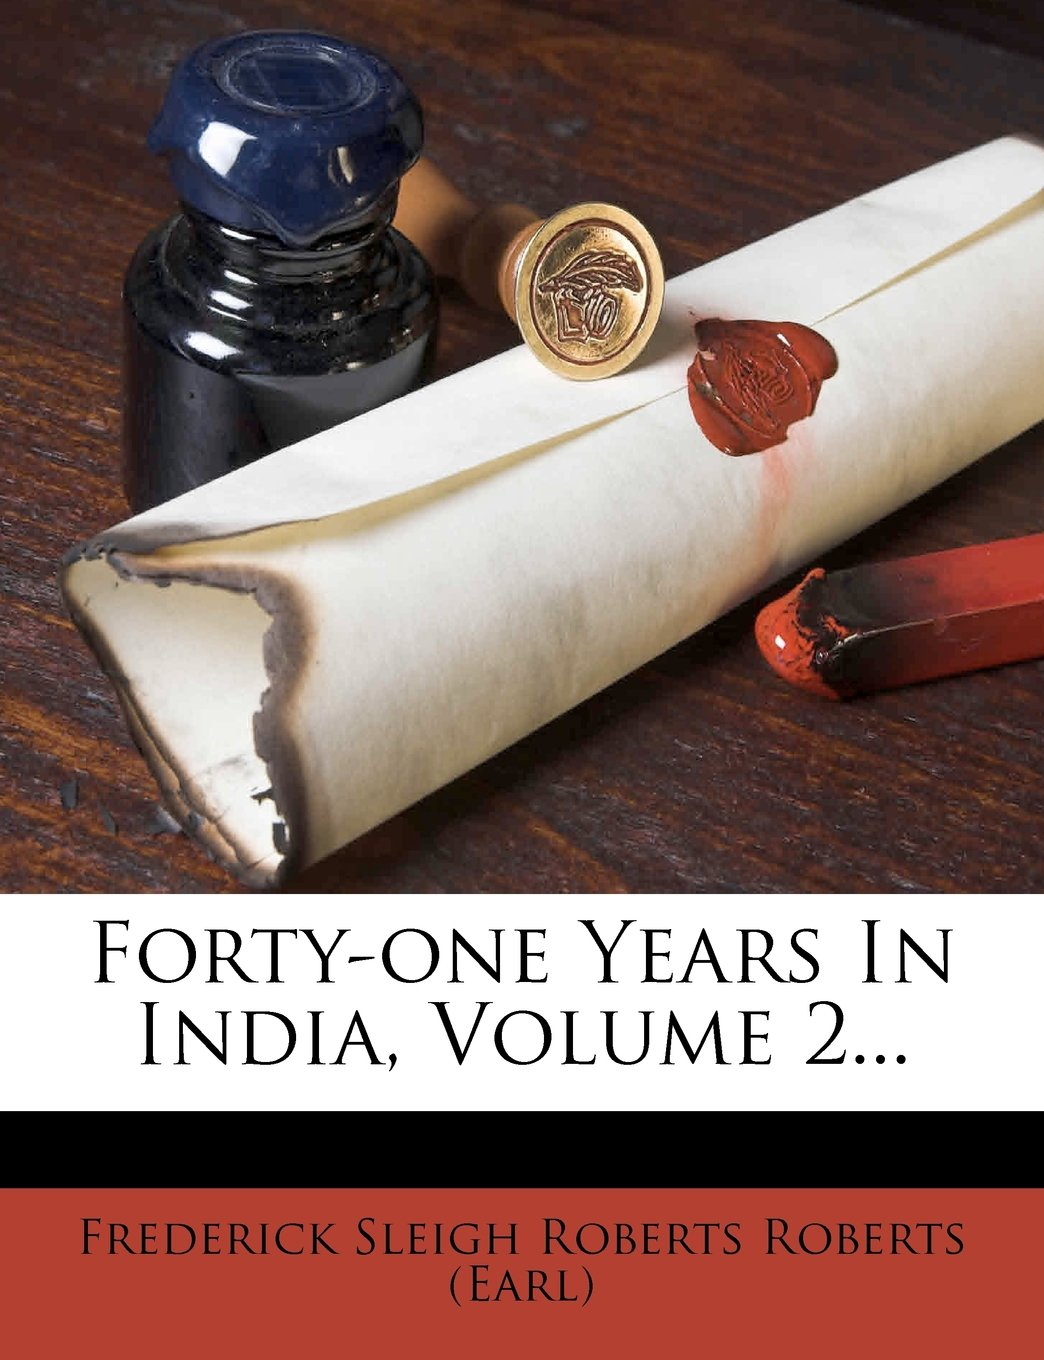 Forty-one Years In India, Volume 2... ebook